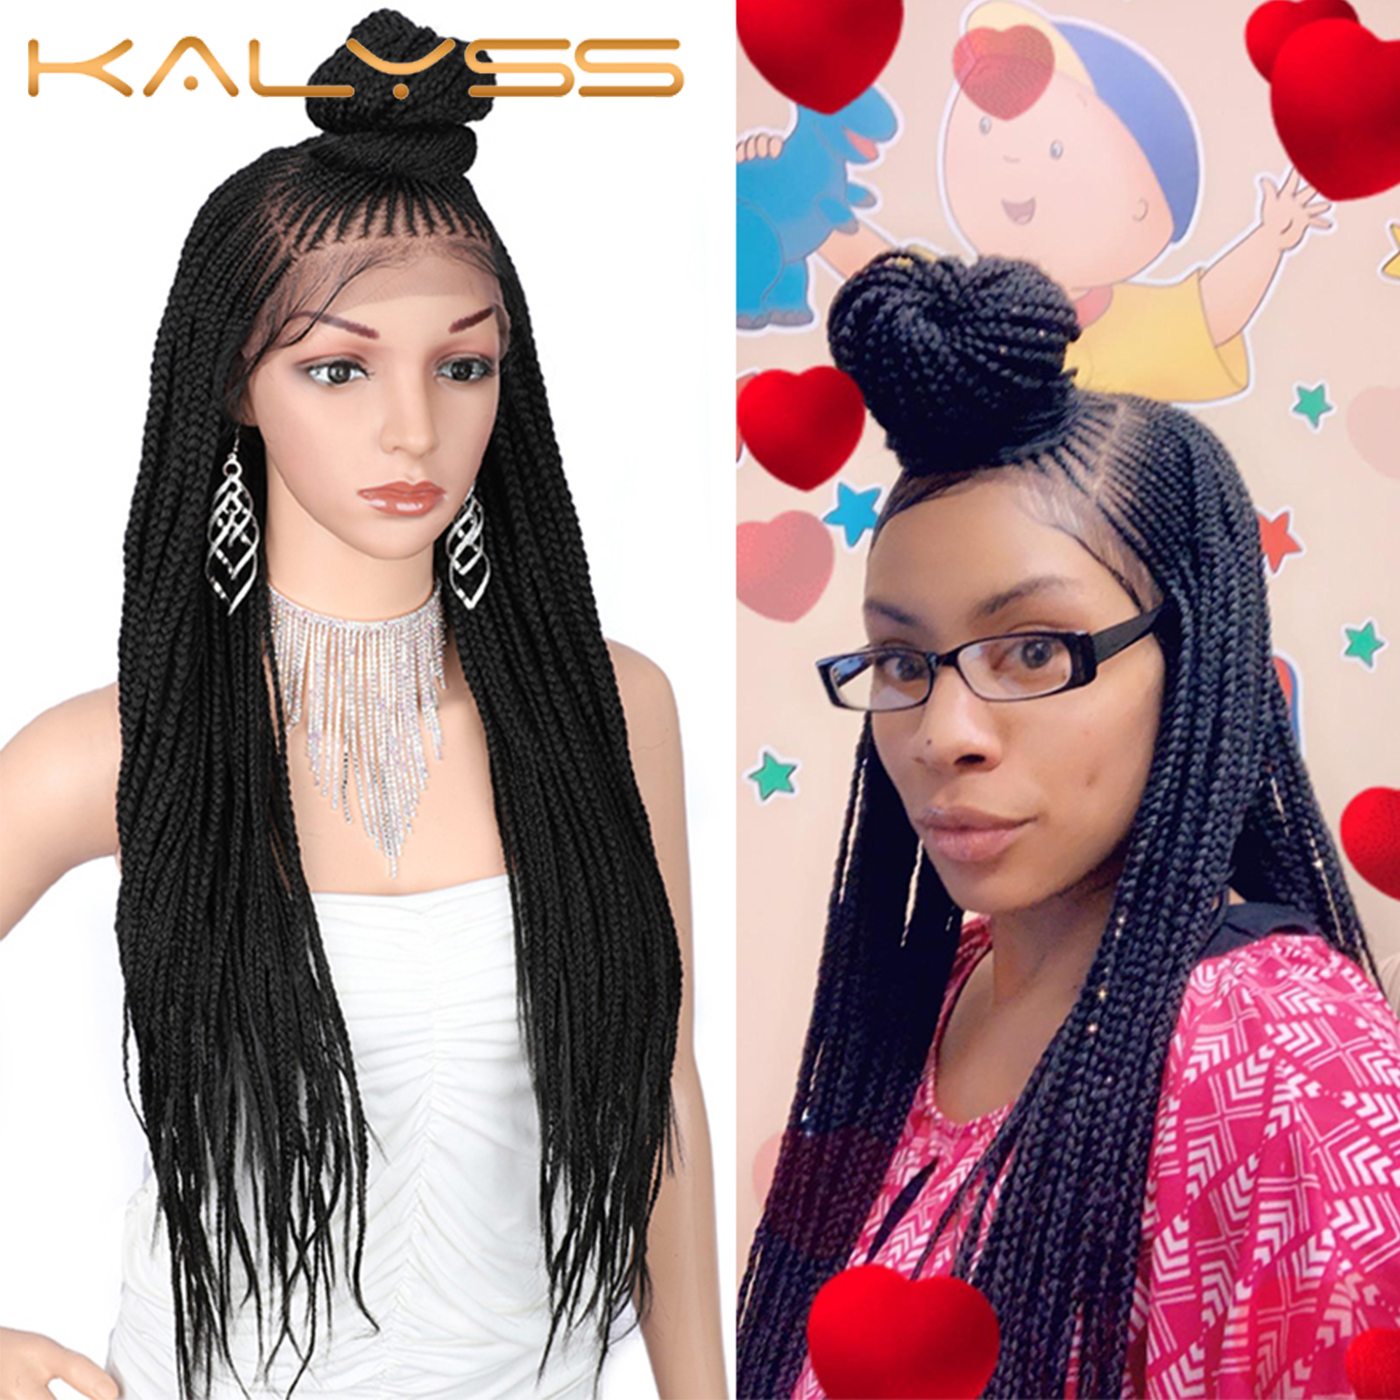 Kaylss 30 Inches 13x7 Braided Wigs Synthetic Lace Front Wig Updo Braided Wigs With Baby Hair For Black Women Cornrow Braided Wig Synthetic Lace Wigs Aliexpress